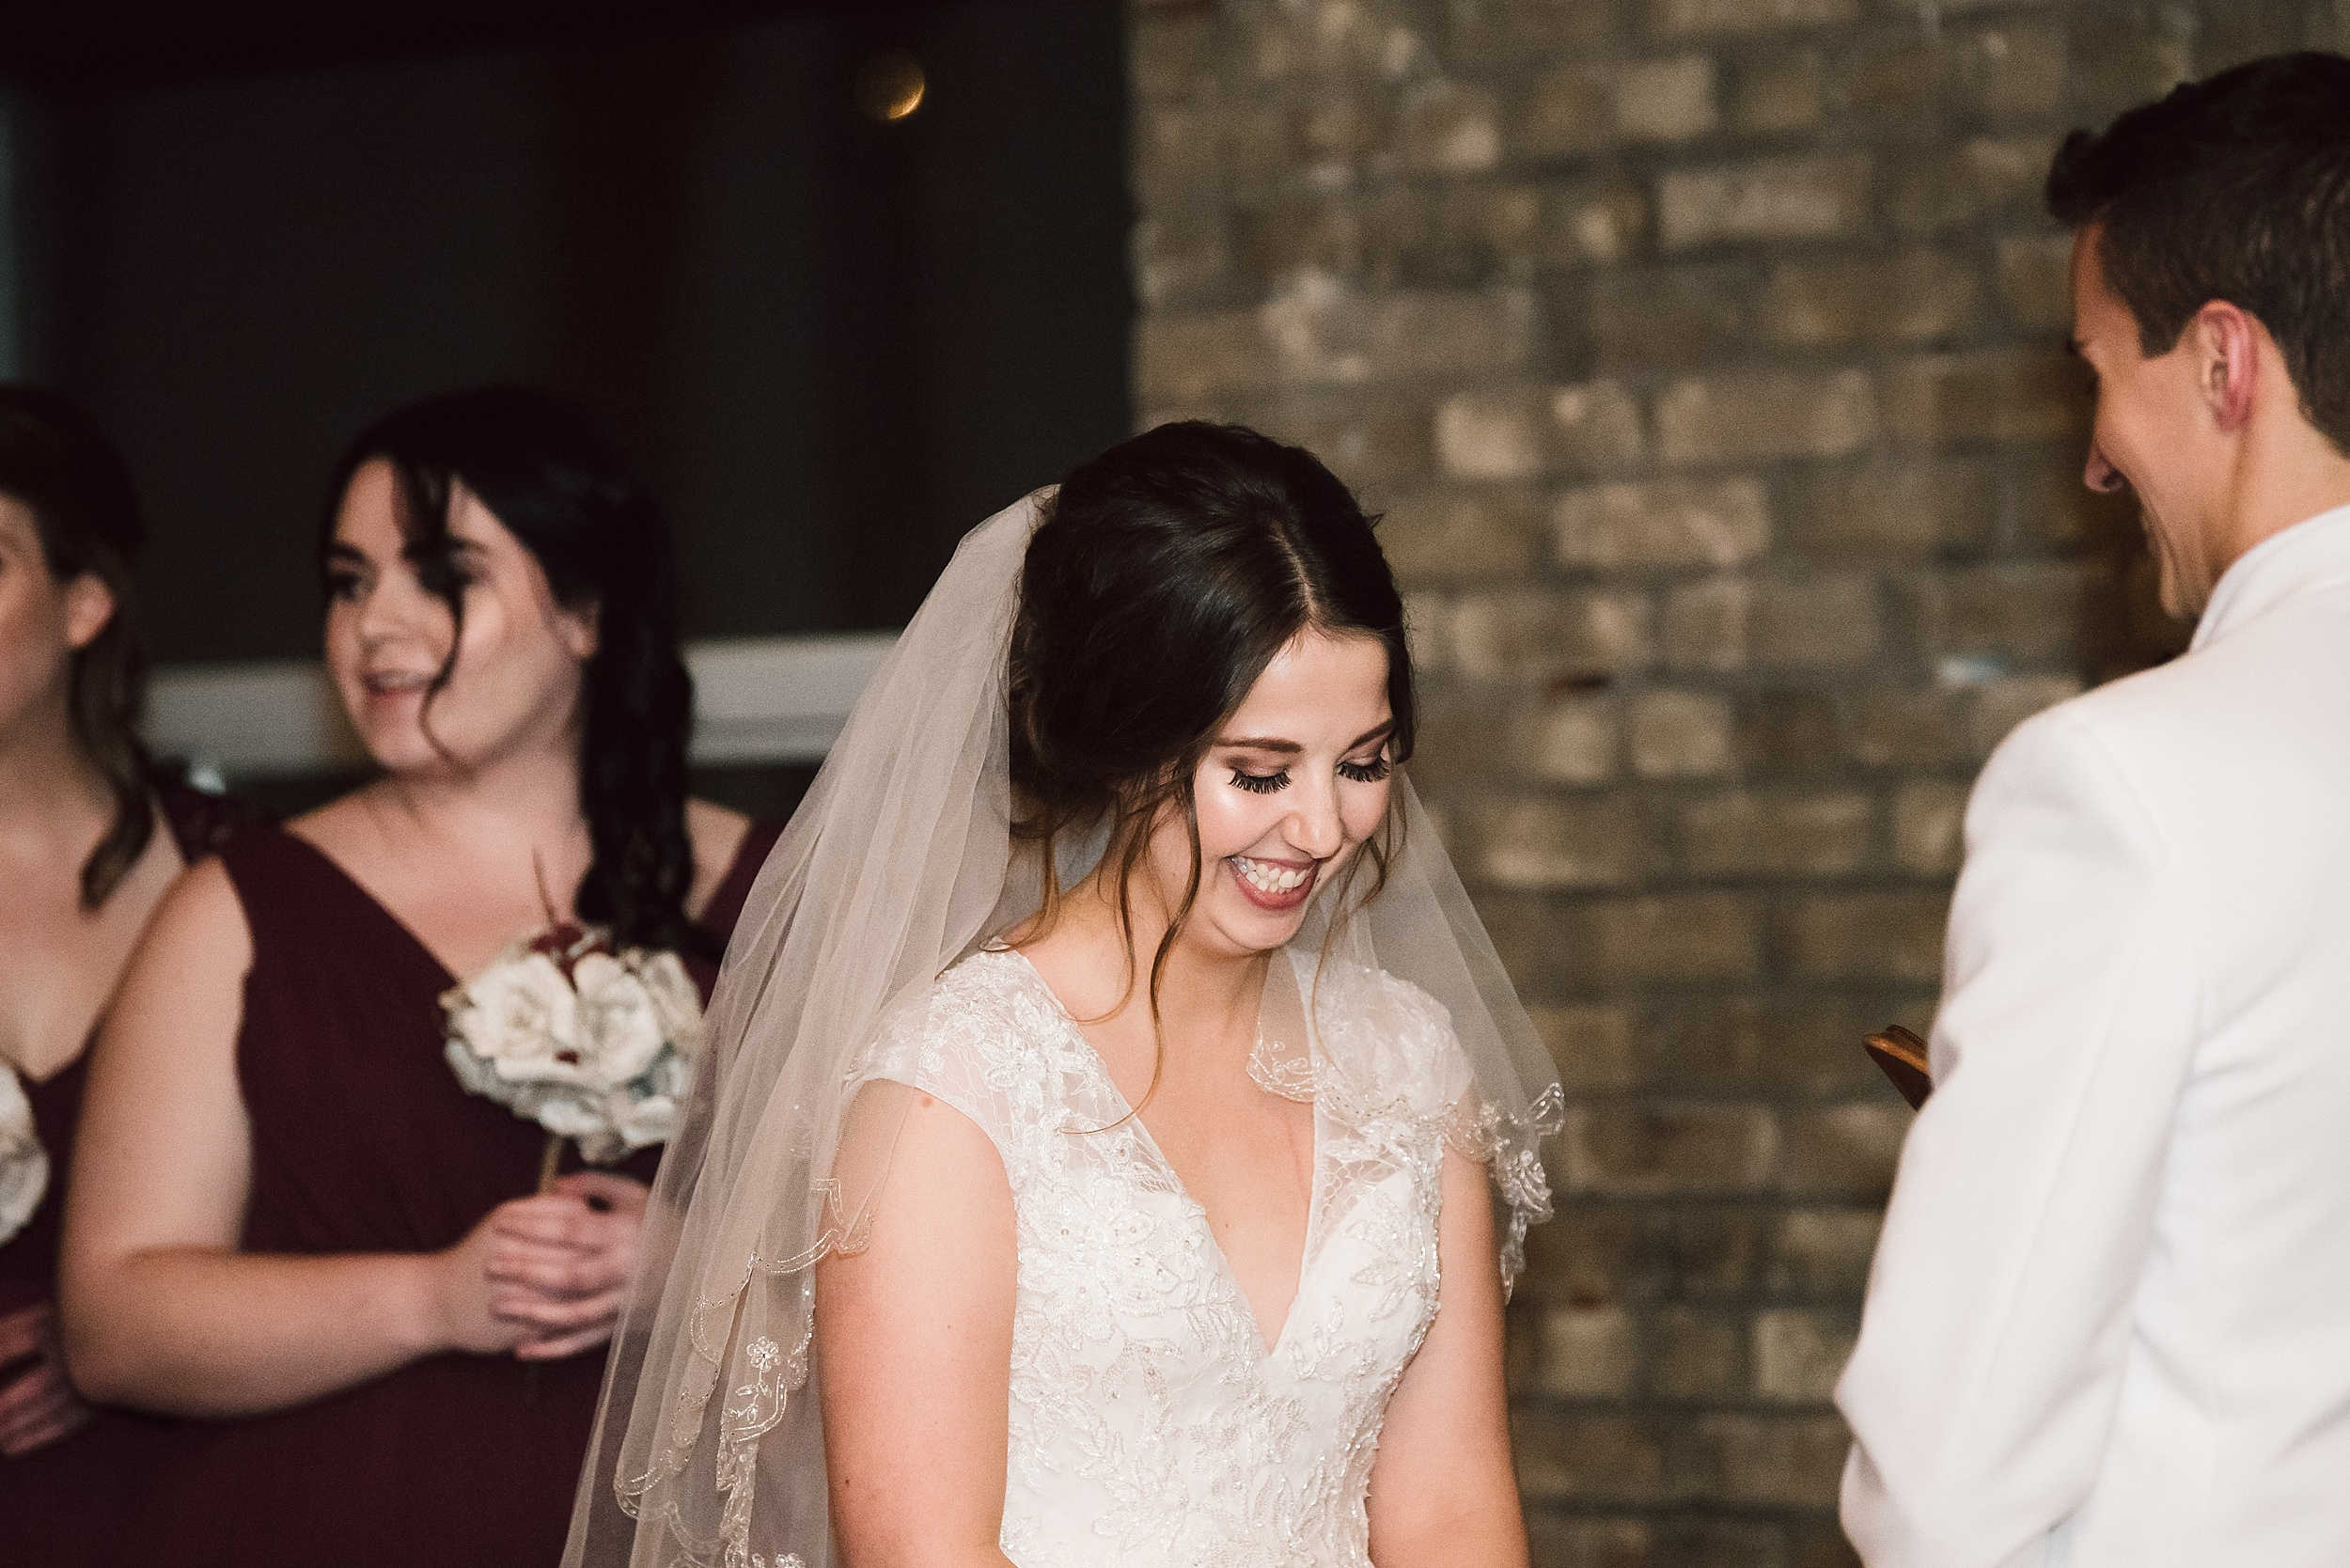 Jam_Factory_Wedding_Toronto_Winter_Wedding_Photographer_0053.jpg